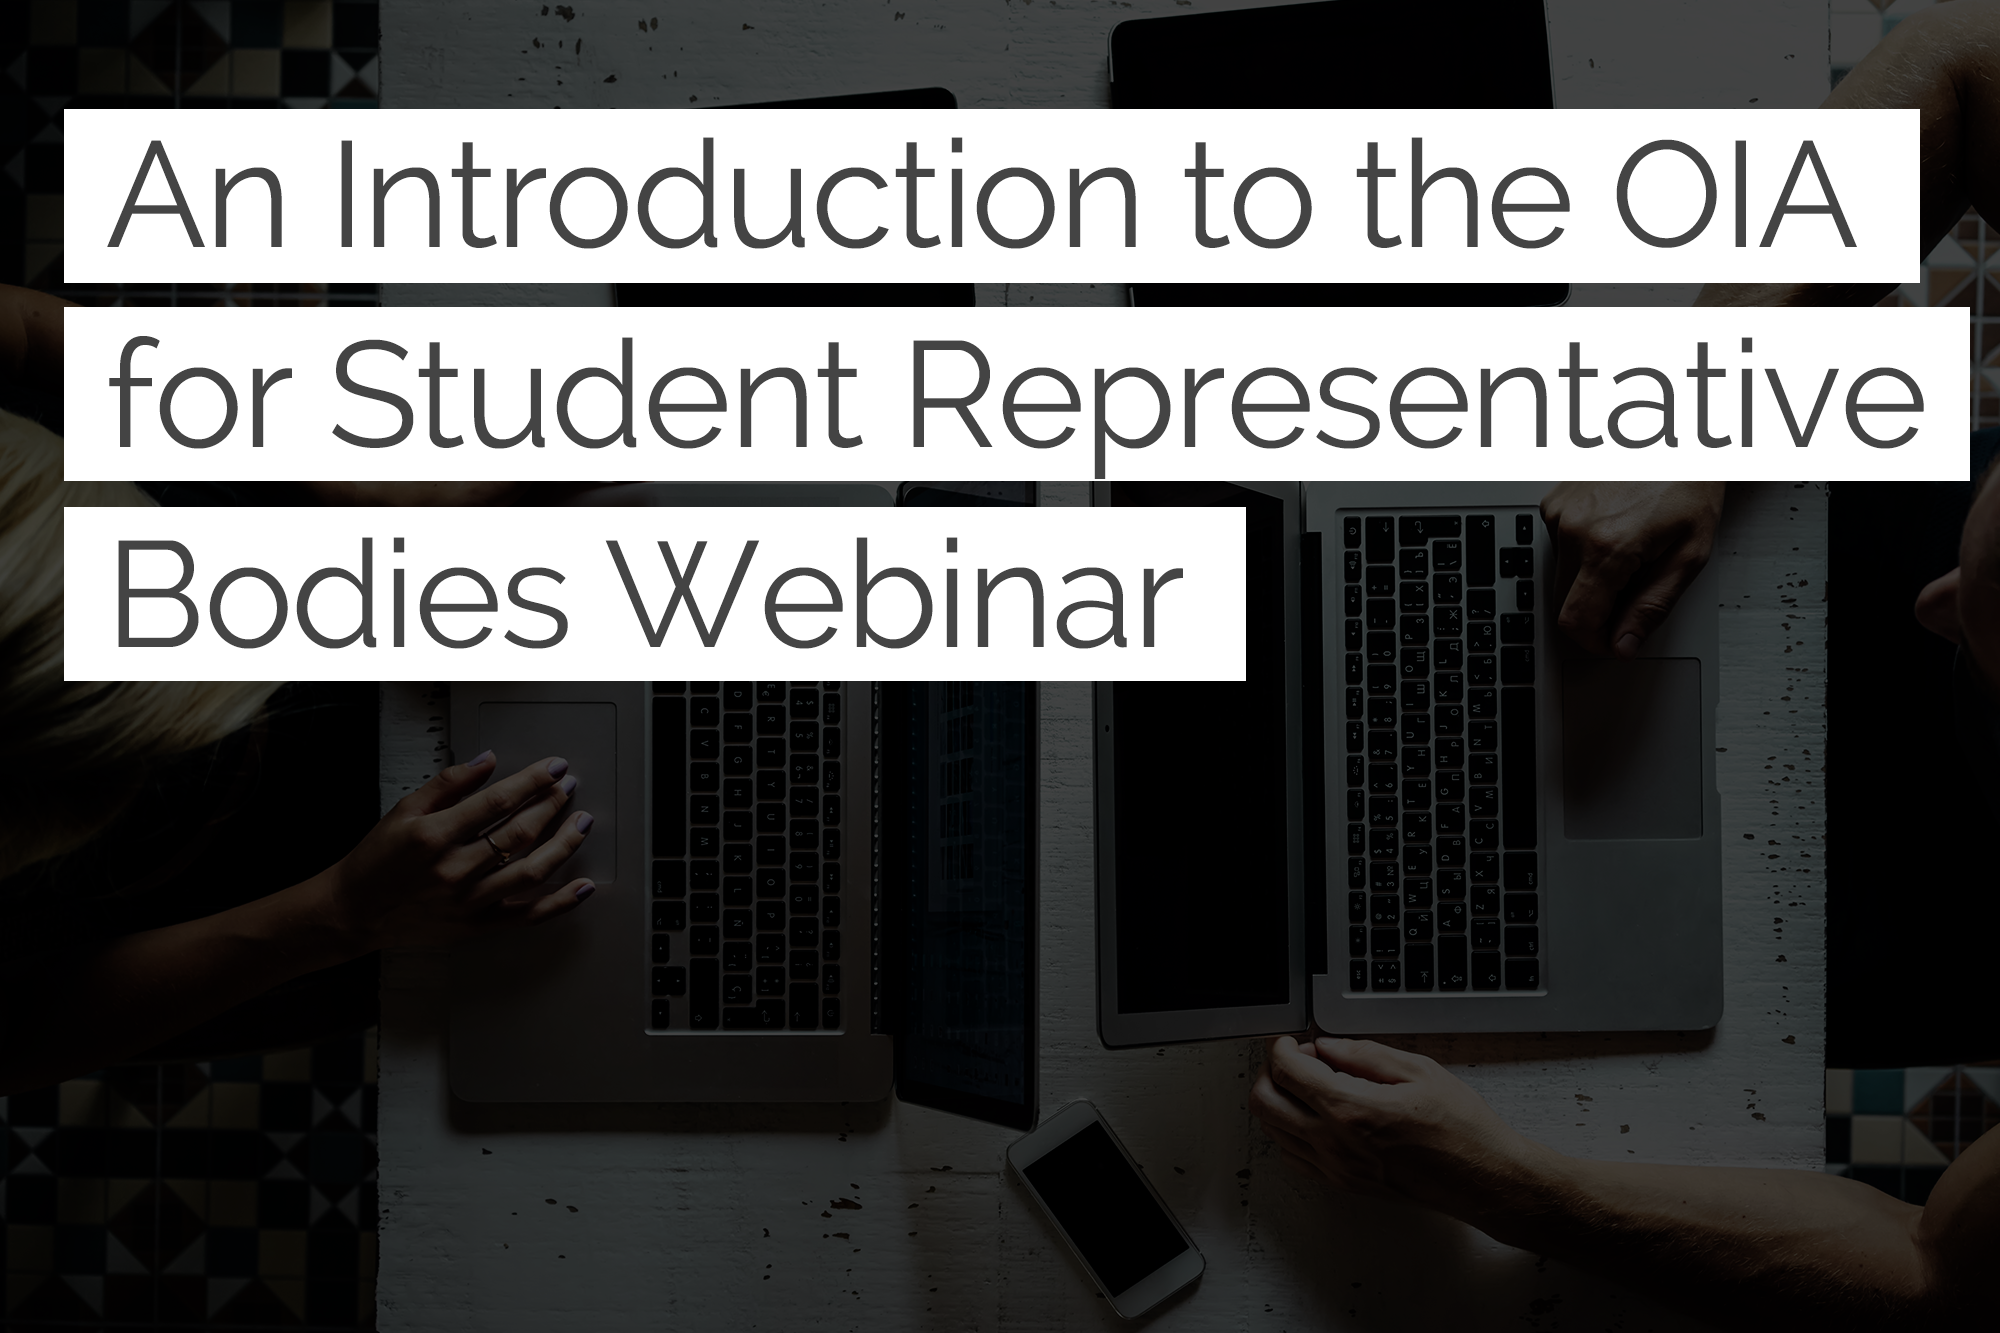 An introduction to the OIA for Student Representative Bodies Webinar